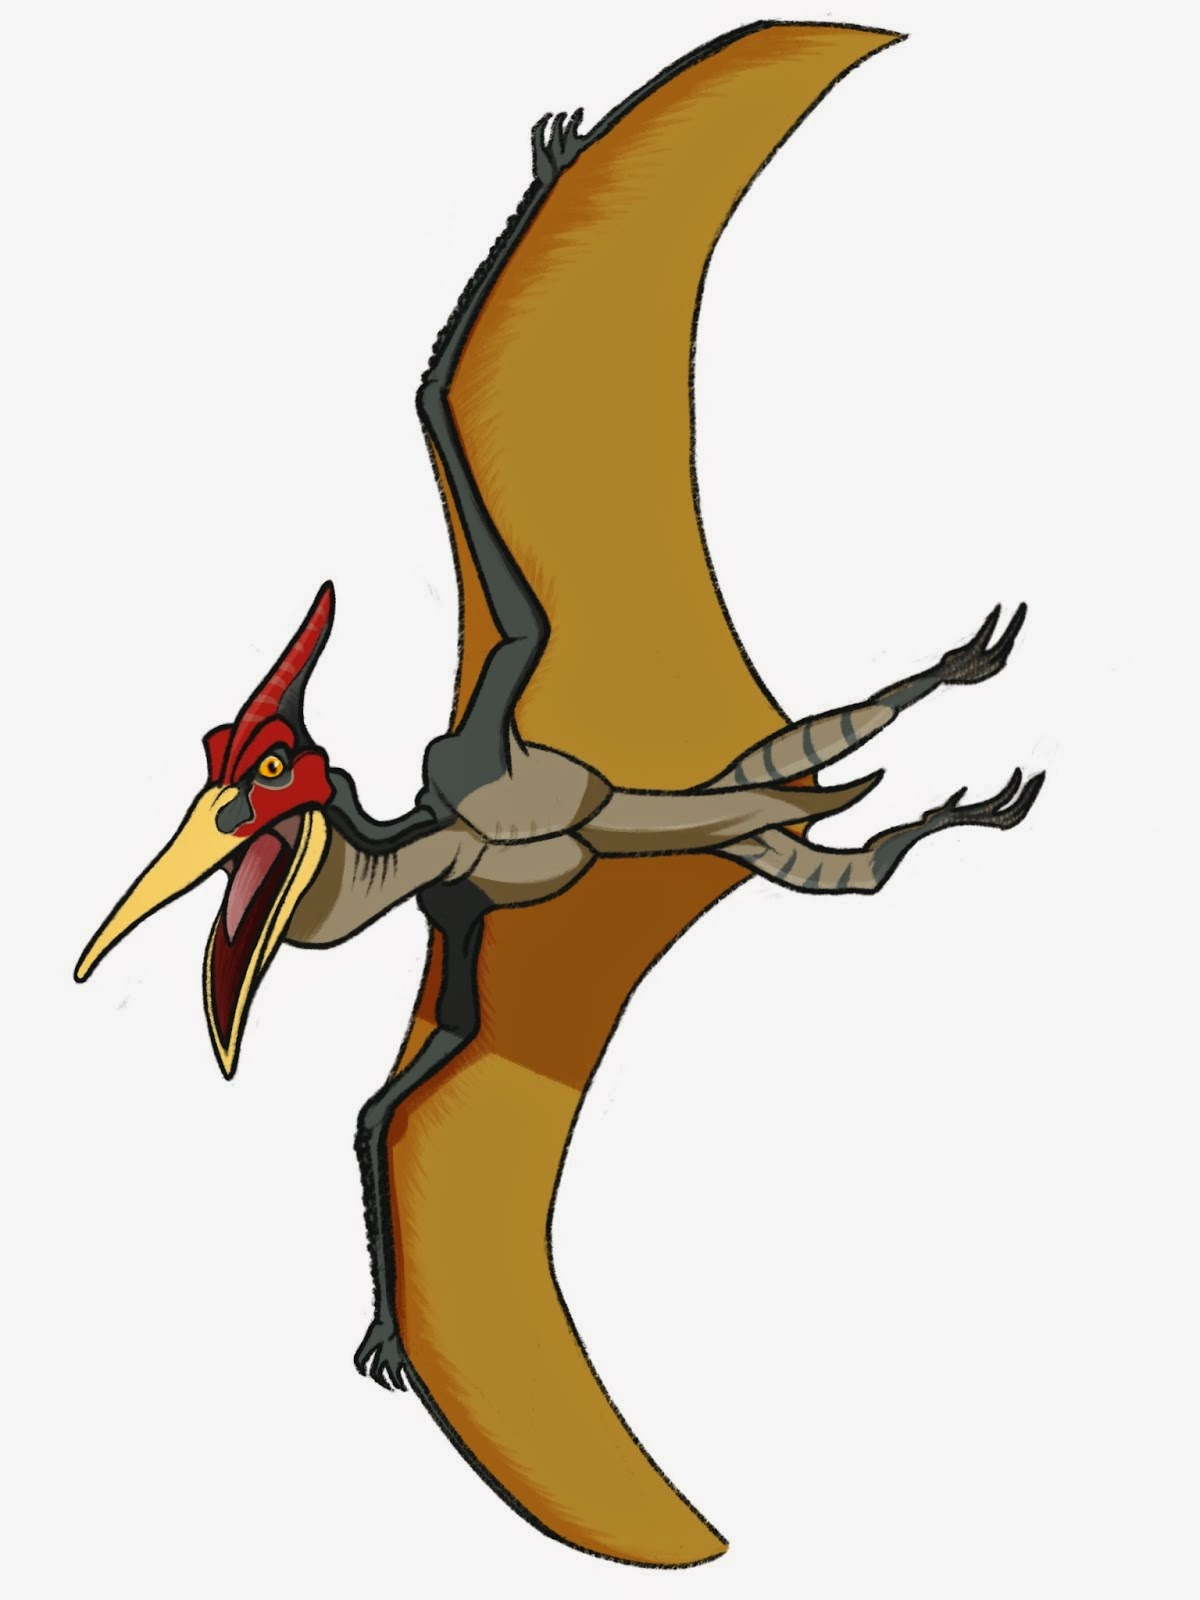 Pteranodon from Jurassic World